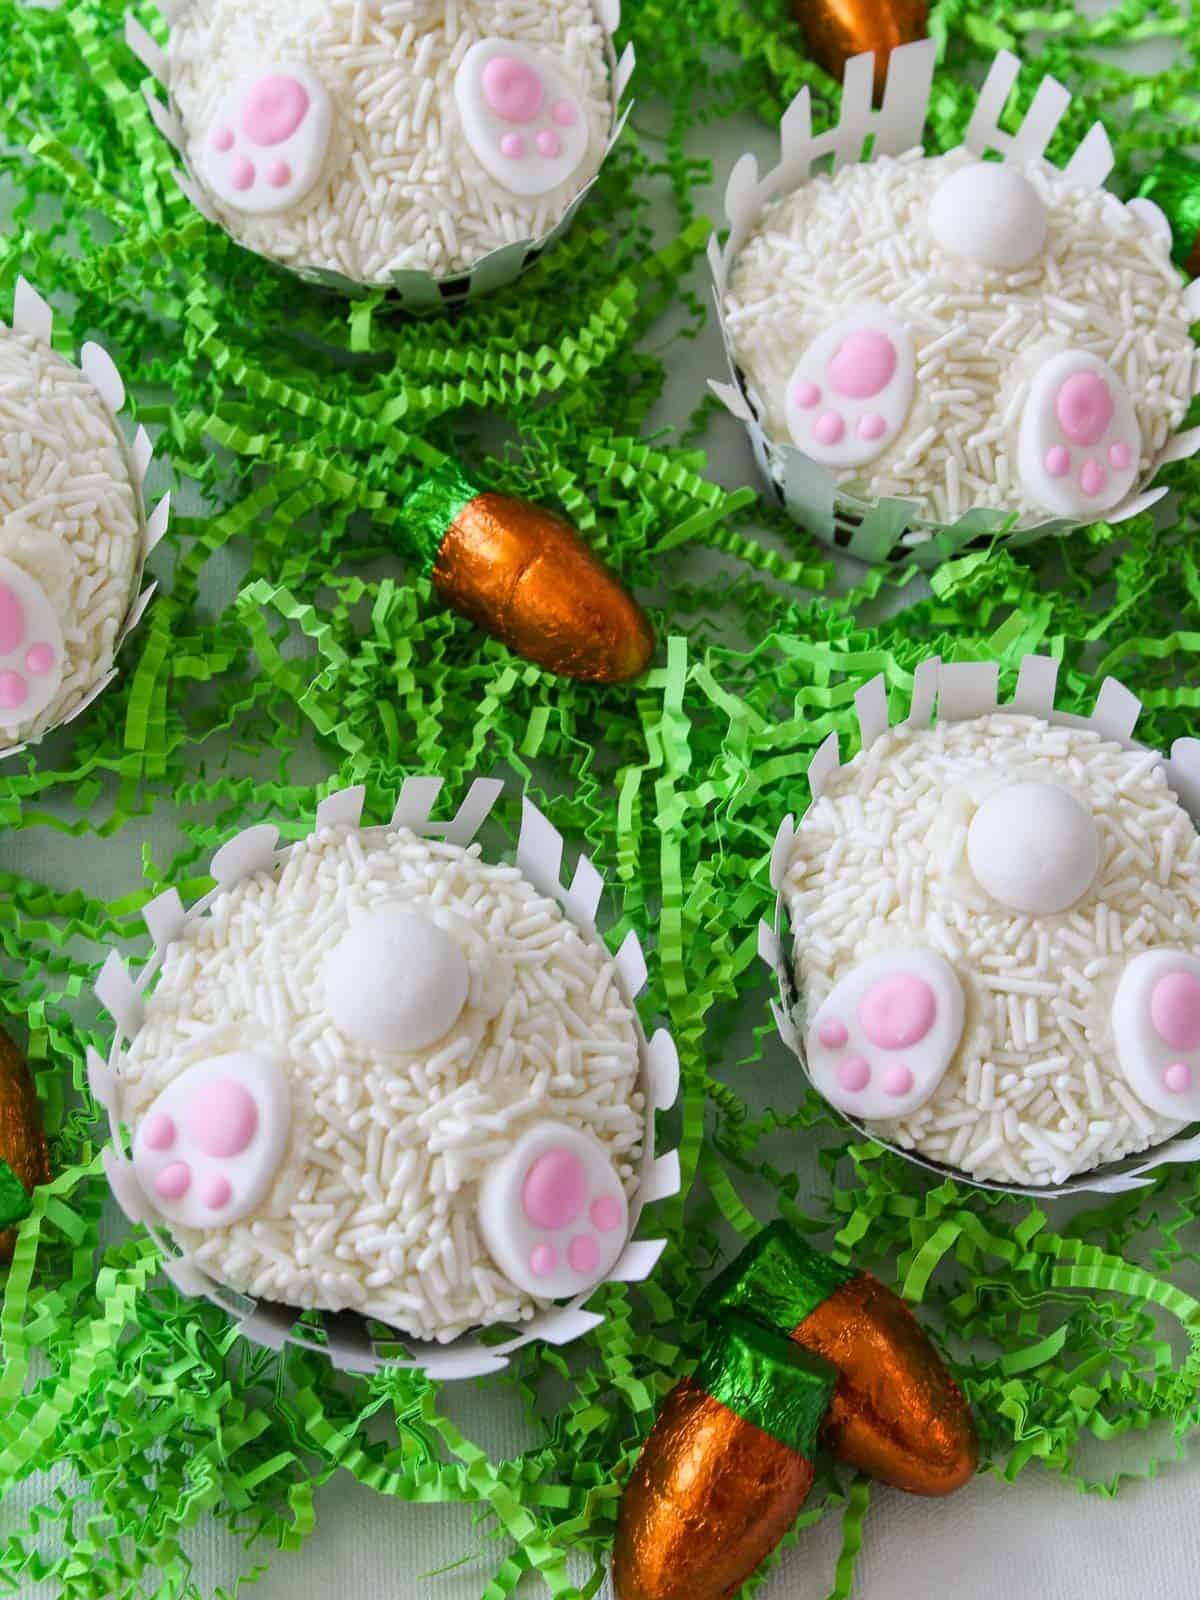 Overhead view of 5 Easter bunny cupcakes on table with green paper grass.